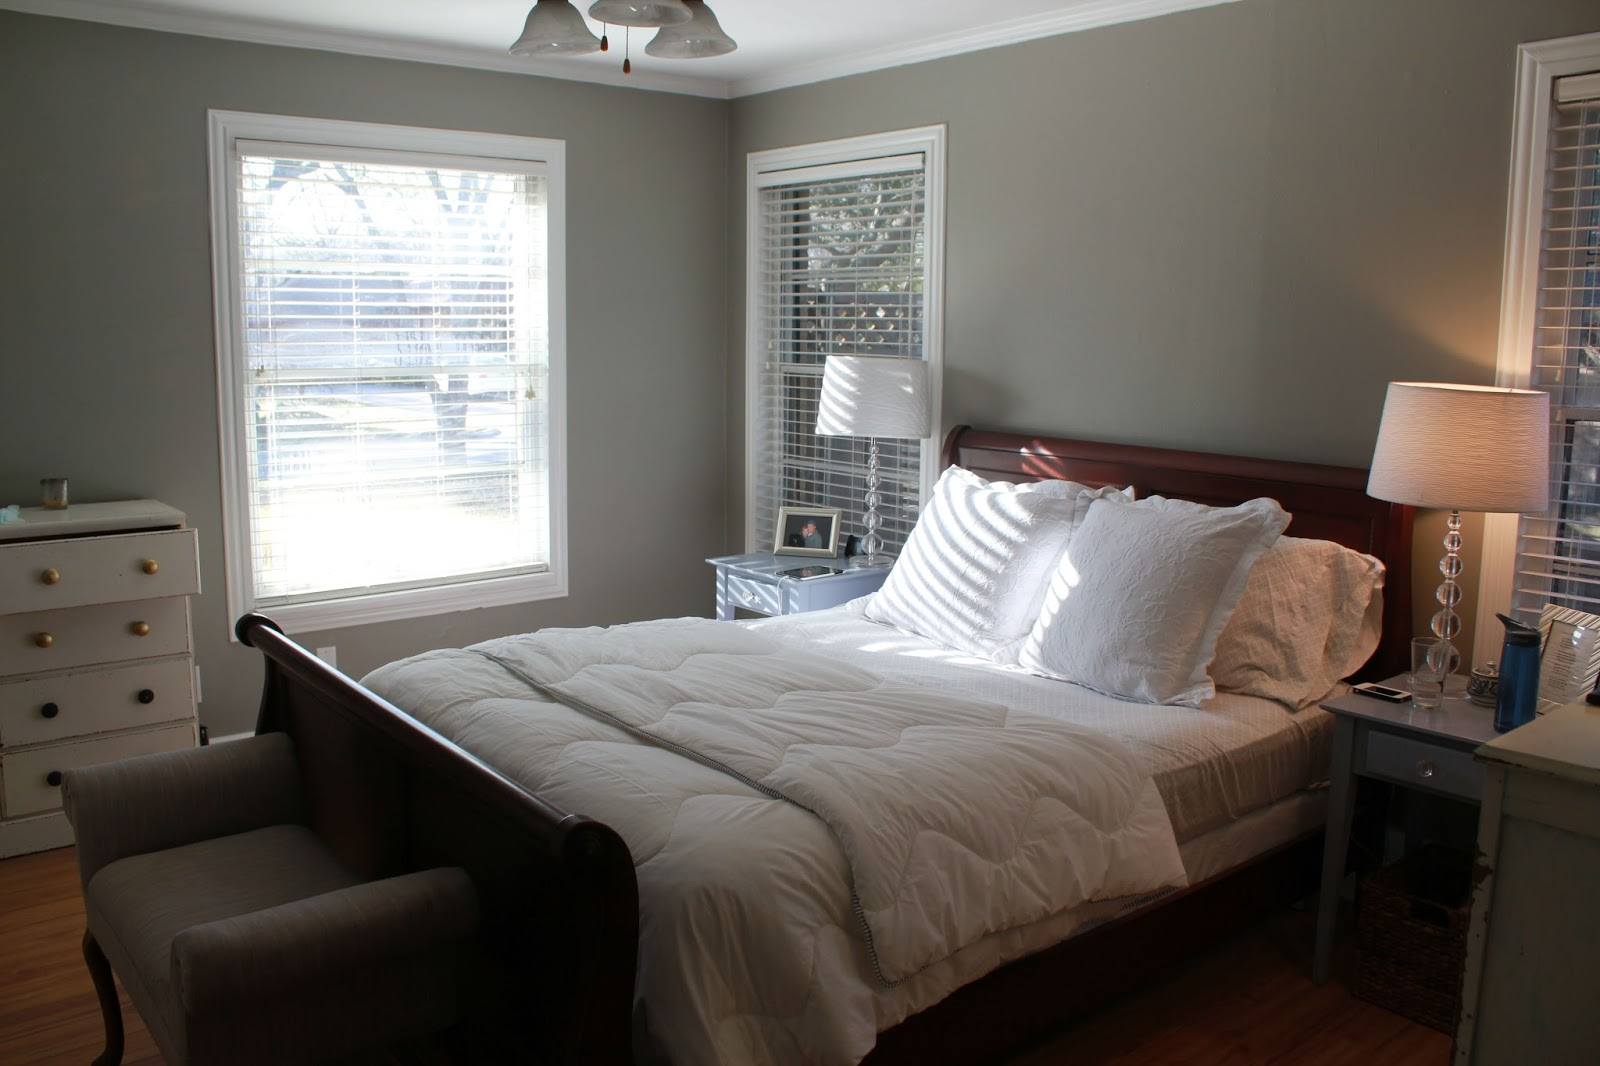 Fresh and Fancy Pottery Barn Bedding & Our Master Bedroom ...